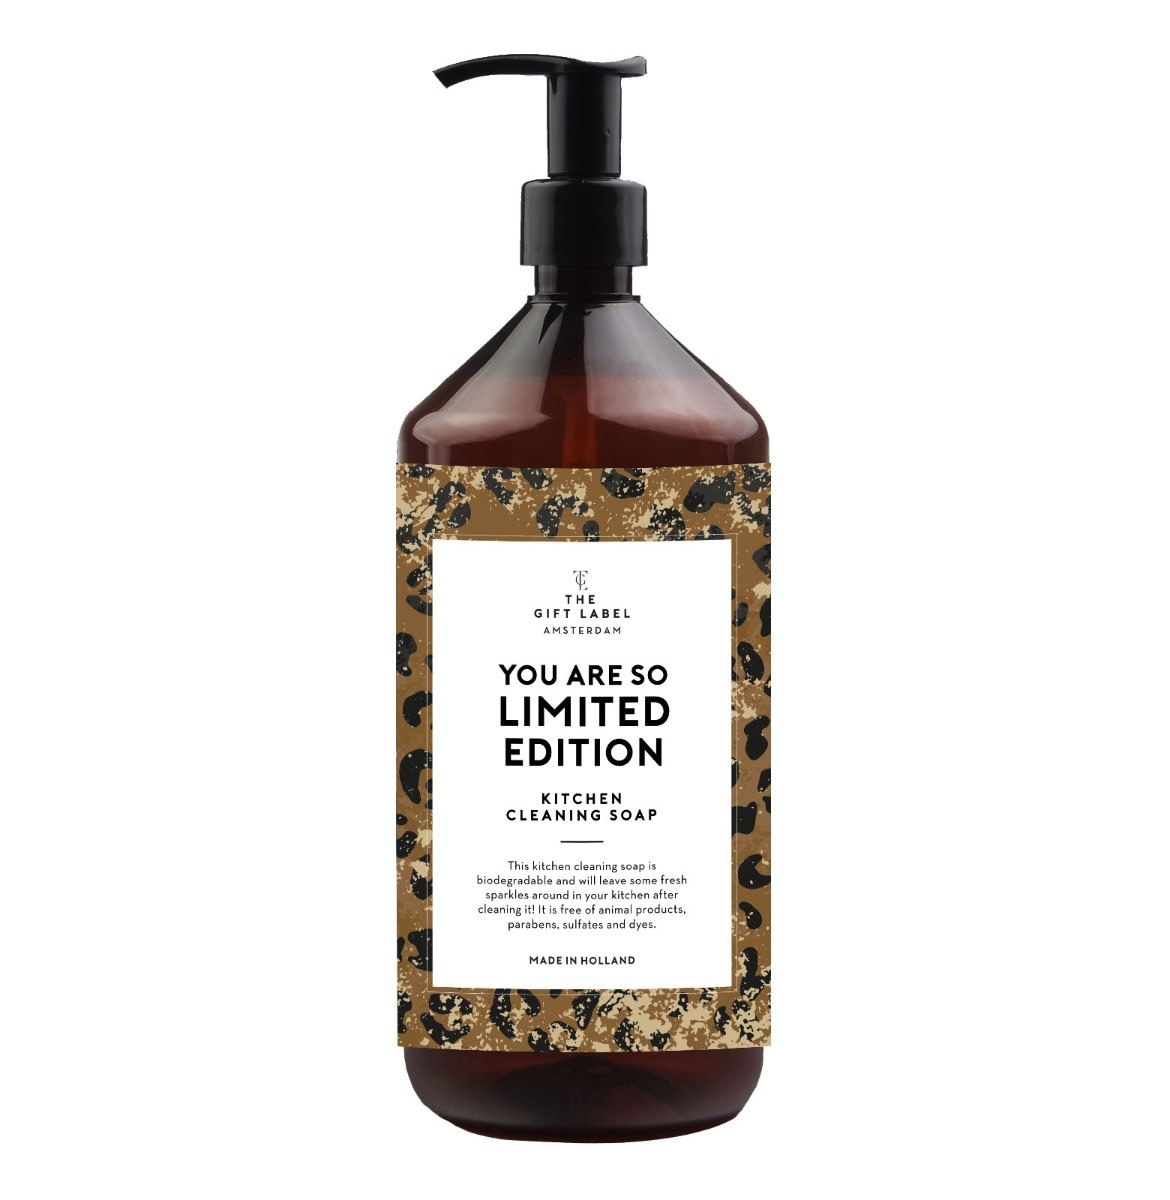 The Gift Label Kitchen cleaning soap 1 L - You are so limited edition